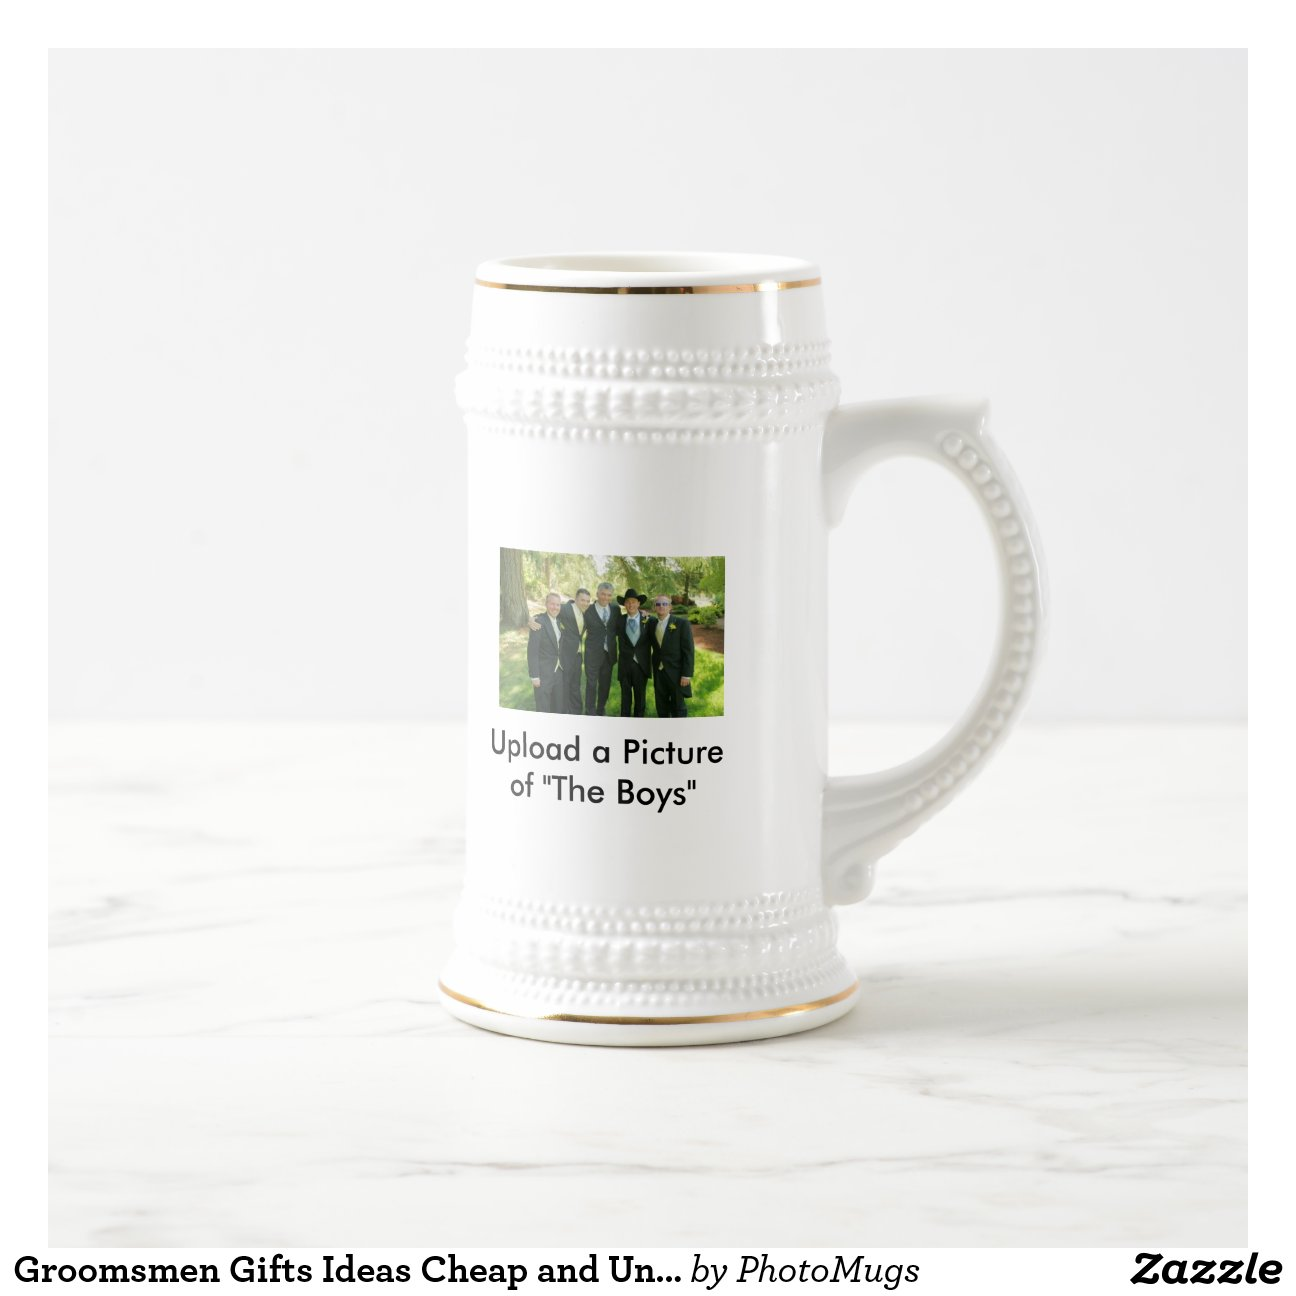 Inexpensive Mugs Groomsmen Gifts Ideas Cheap And Unique Beer Mugs